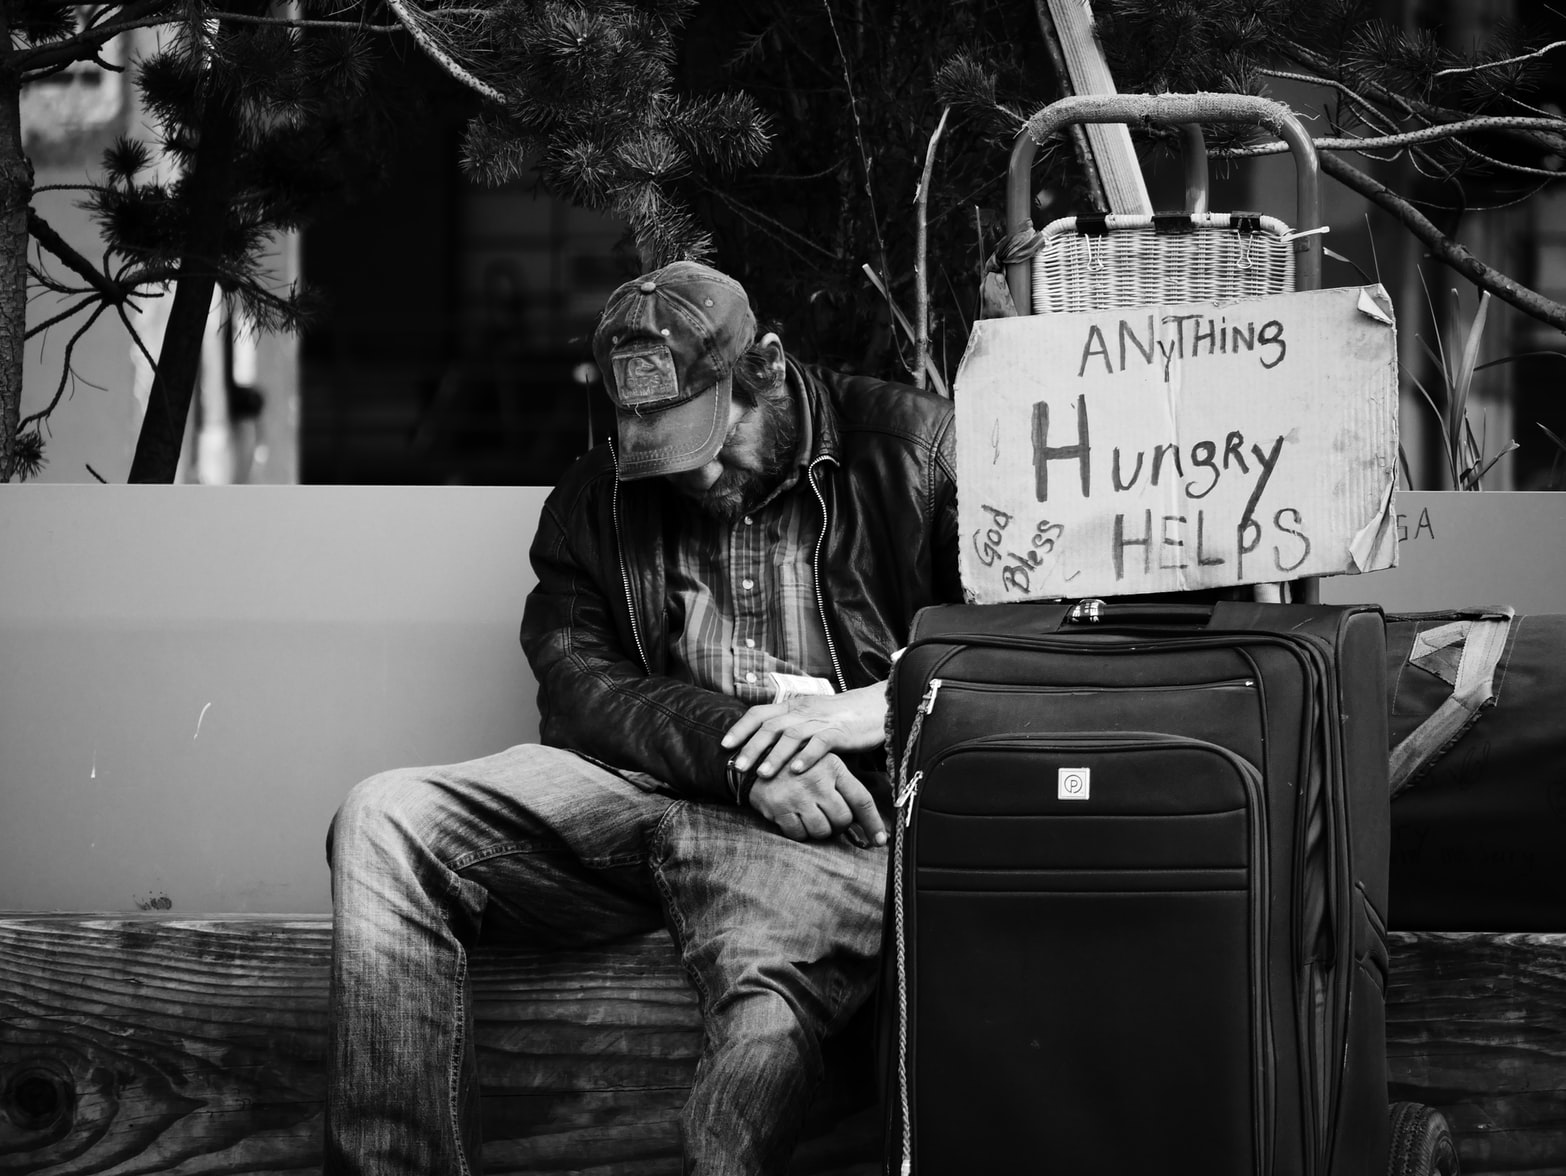 Grayscale photography of homeless man sitting on bench next to luggage and cardboard sign